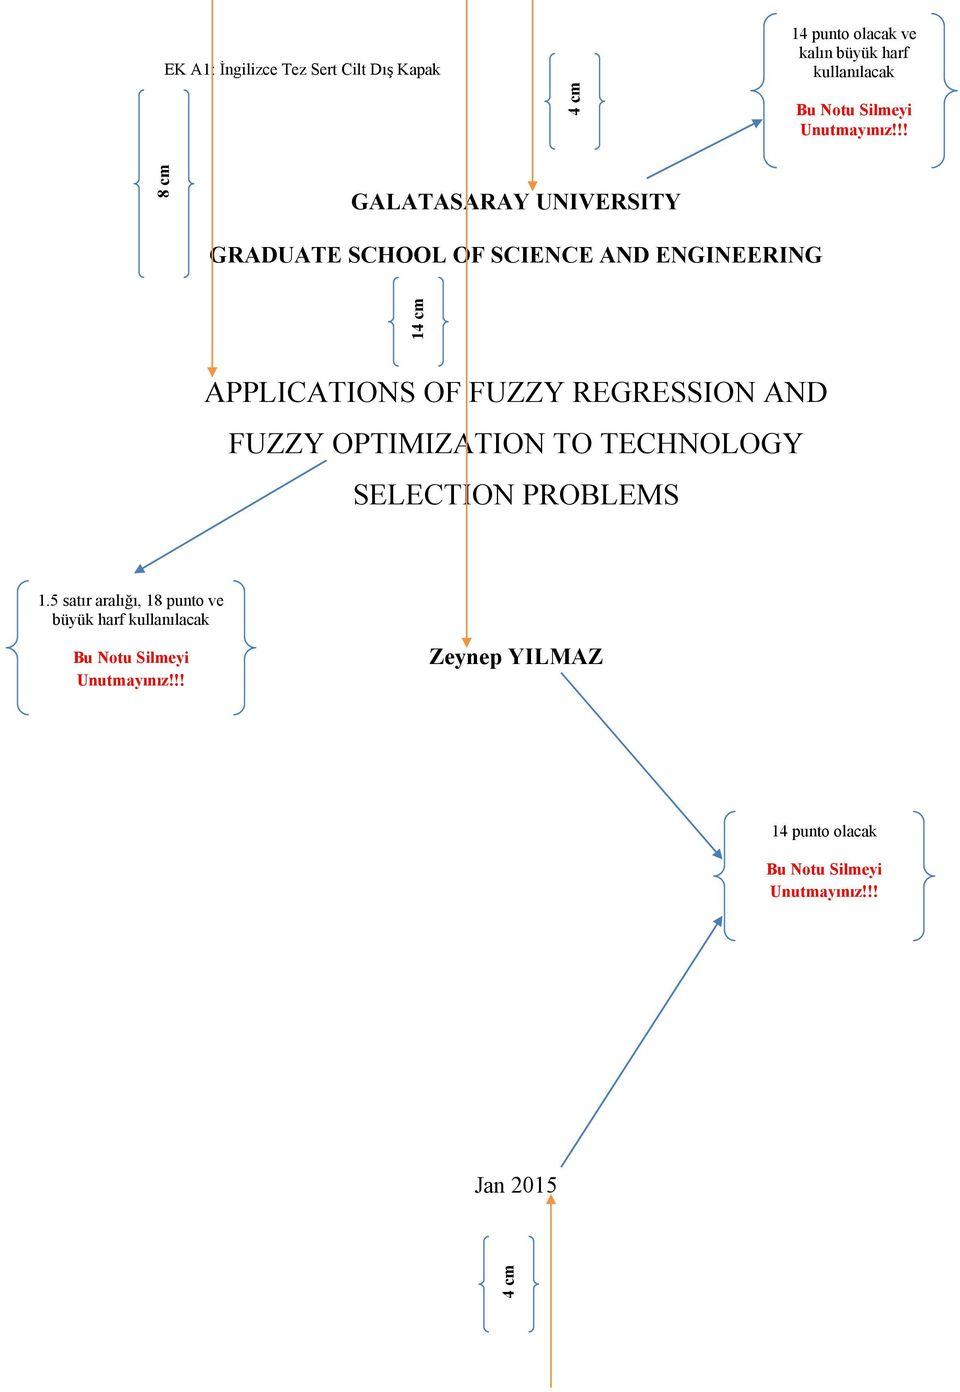 !! 8 cm GALATASARAY UNIVERSITY GRADUATE SCHOOL OF SCIENCE AND ENGINEERING 1 APPLICATIONS OF FUZZY REGRESSION